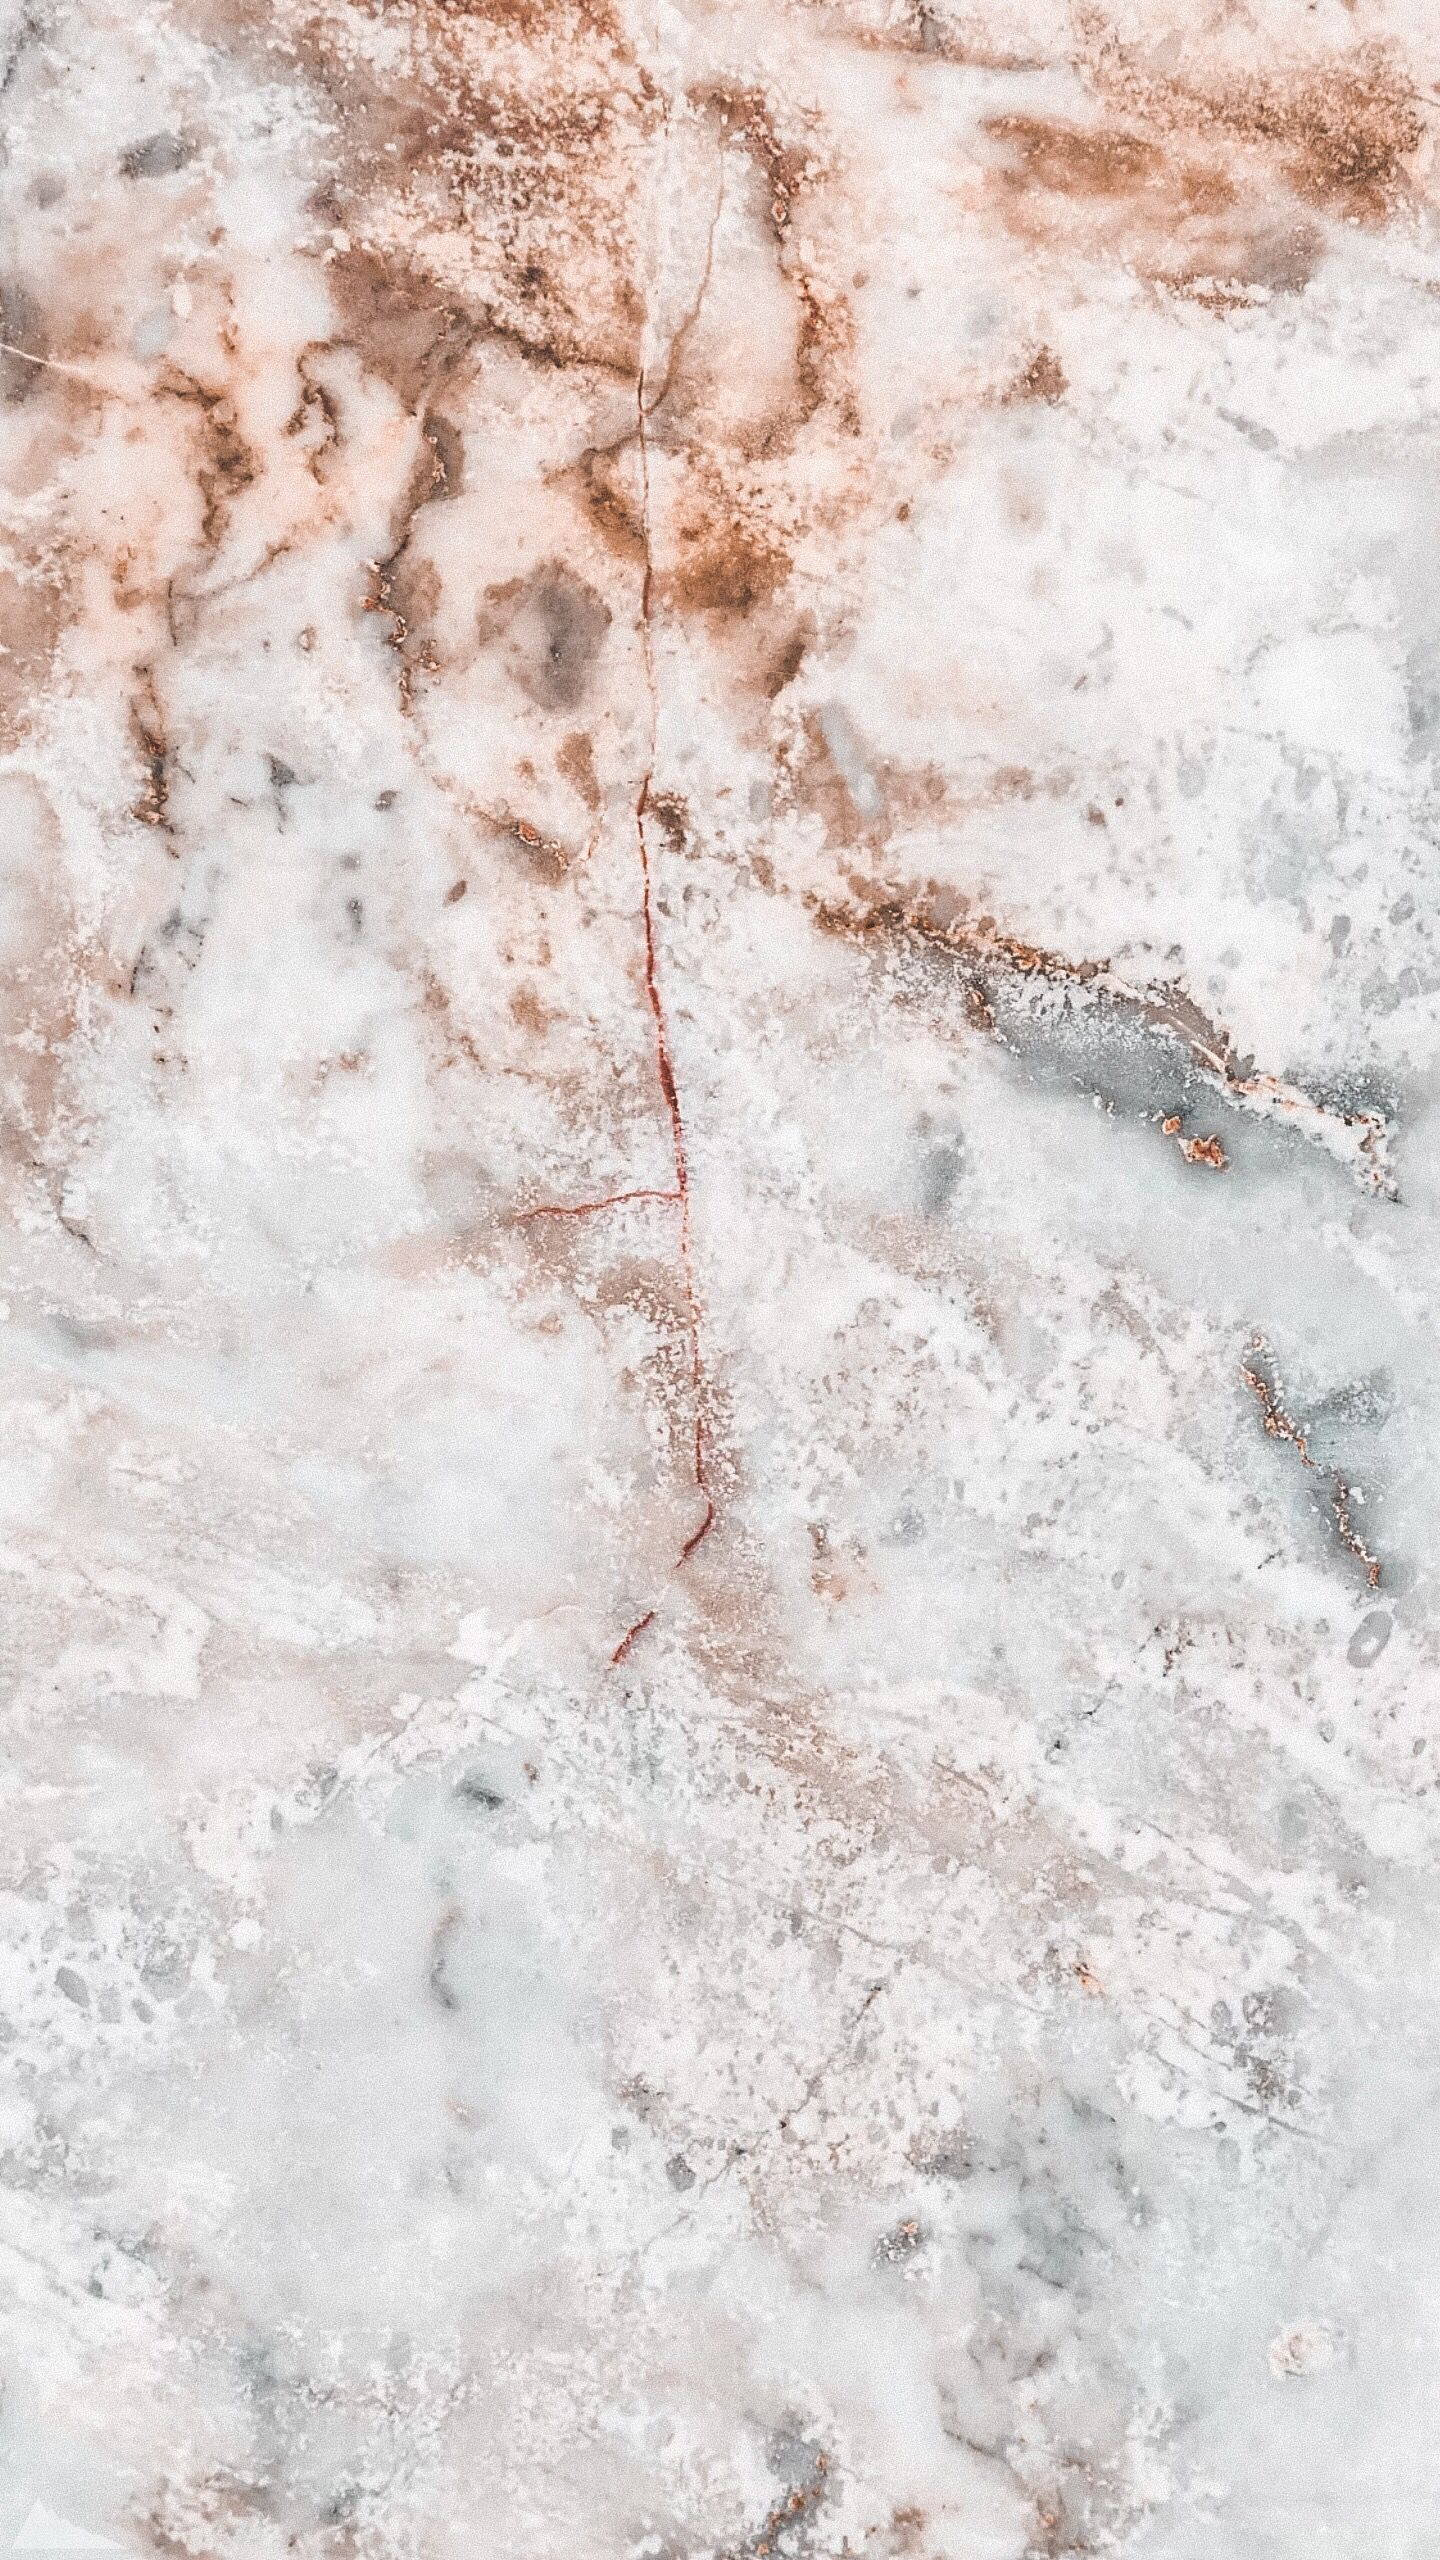 Marble wallpaper for phone